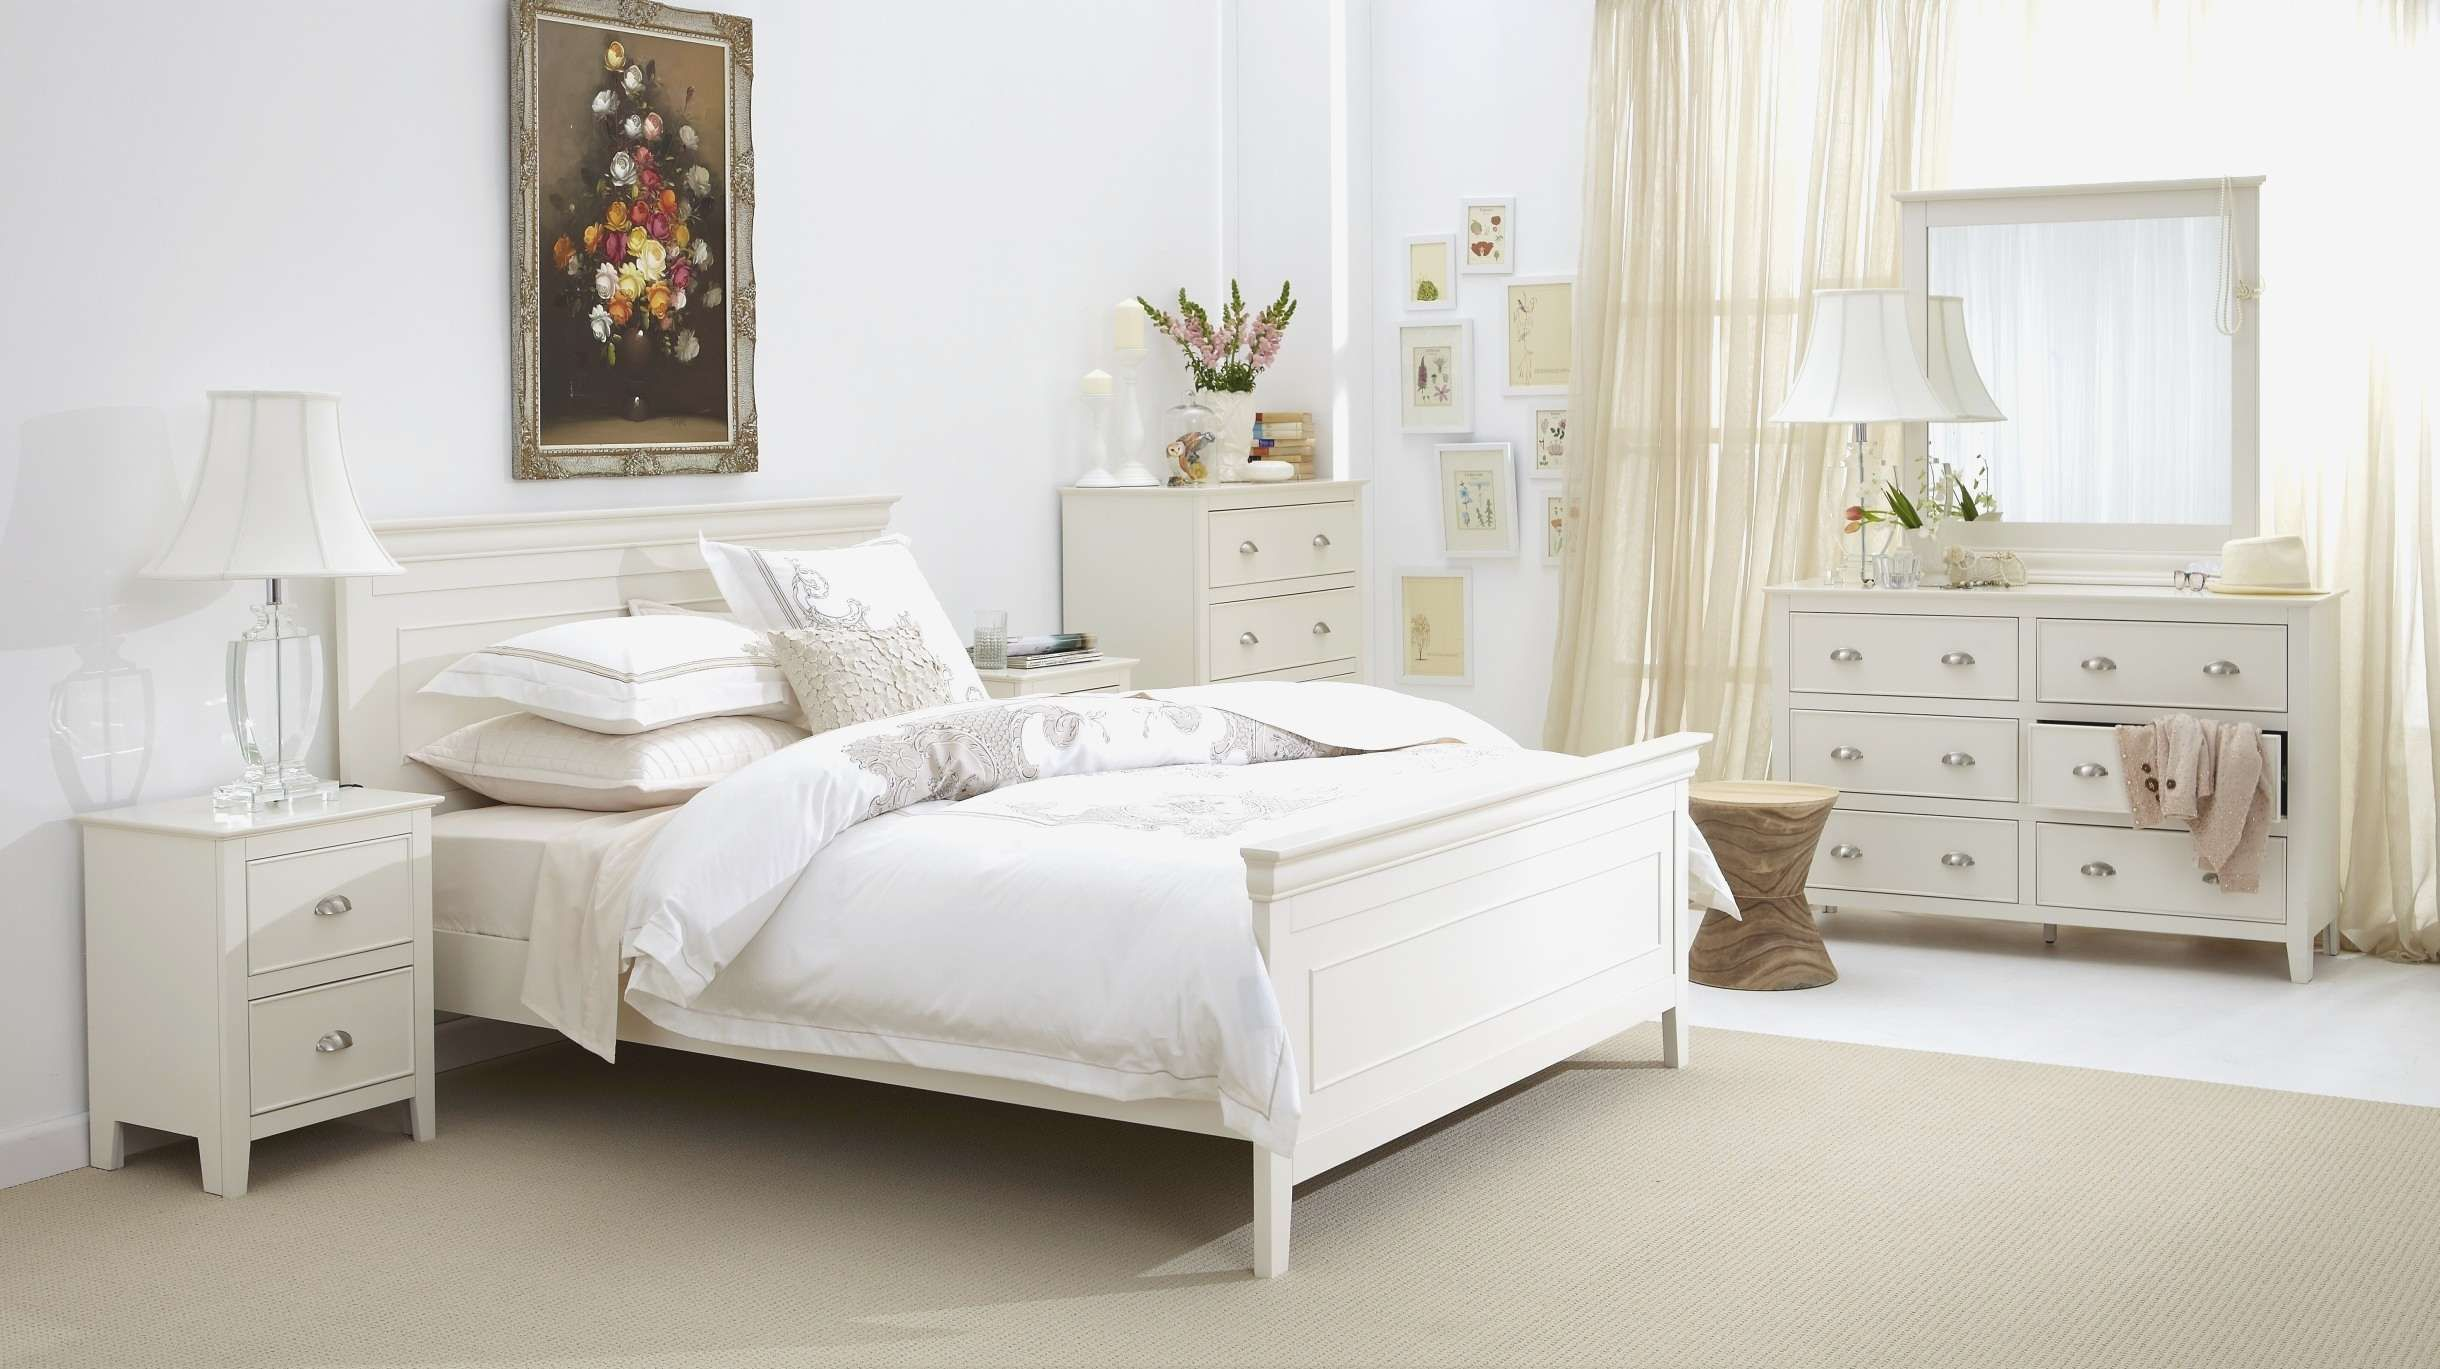 Unique Jcpenney Bedroom Furniture Pictures, Awesome Jcpenney Bedroom Furniture 41